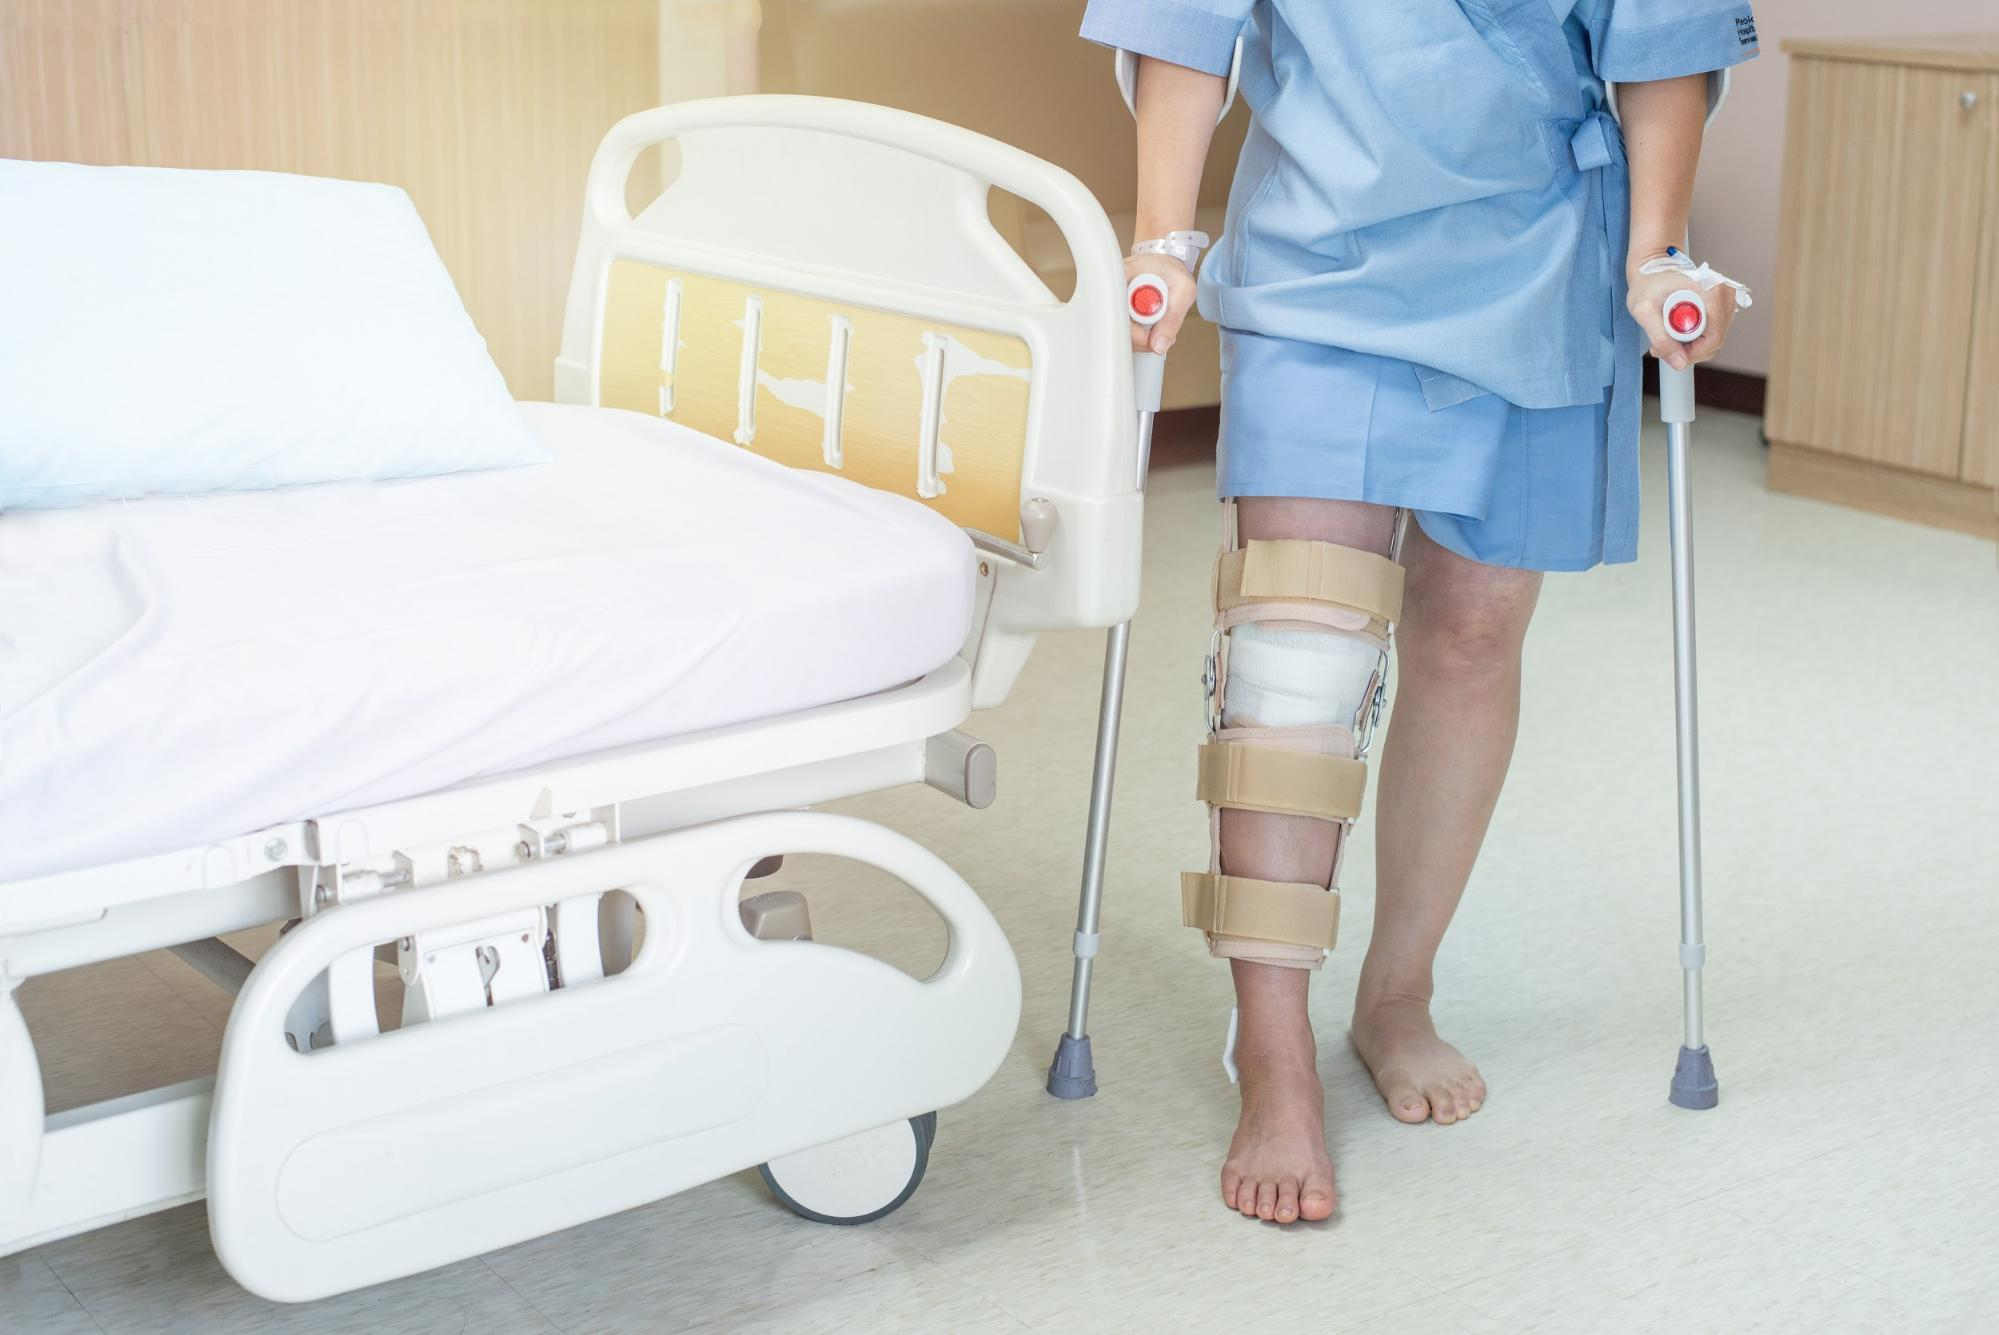 Patient with a knee brace and walking sticks in a hospital room